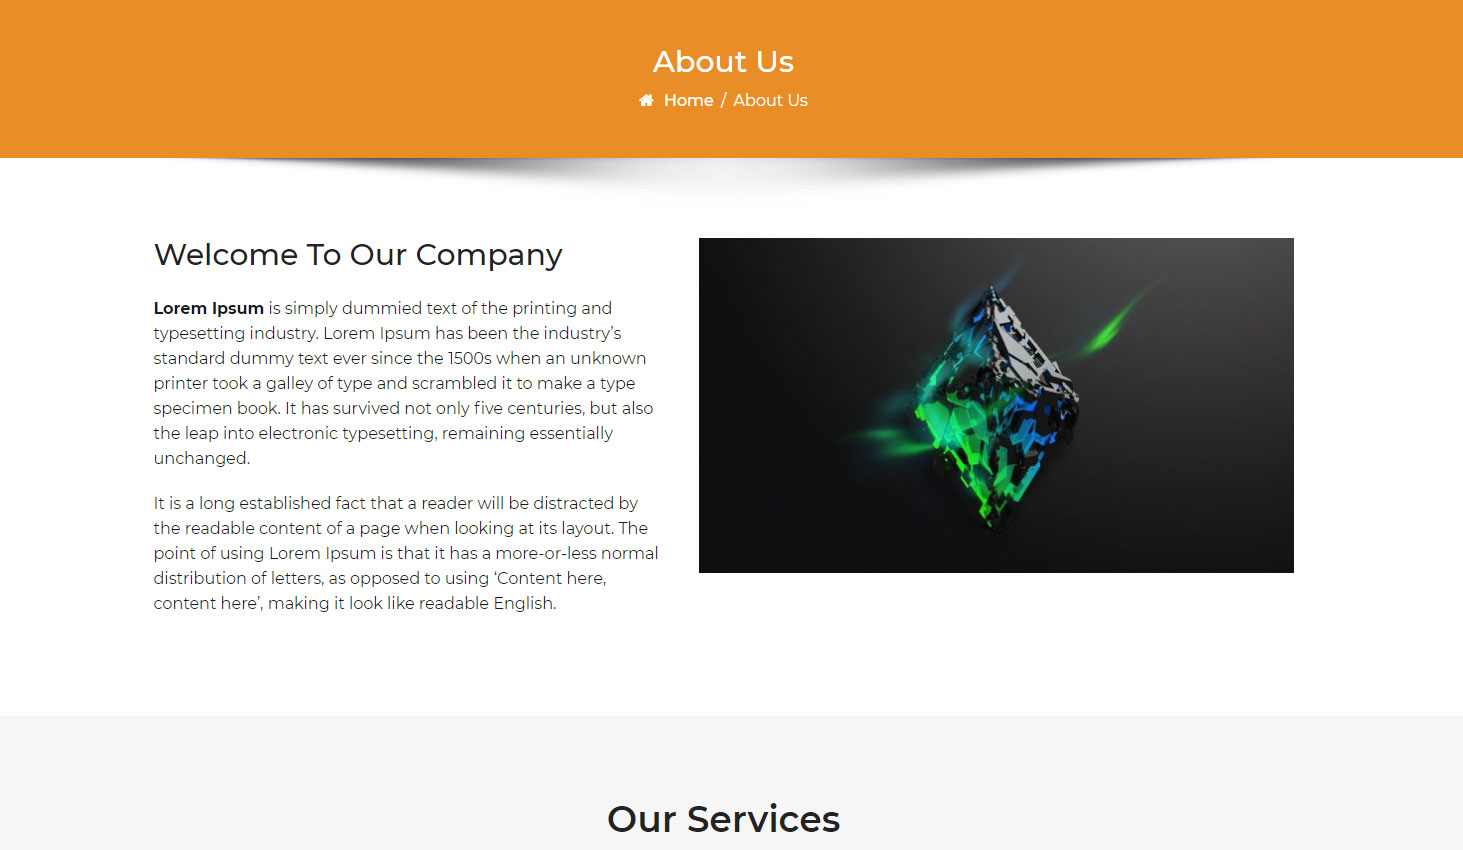 Crypto Premium WordPress Theme For Cryptocurrency Business and Blog Websites - A WP Life - About Us Template